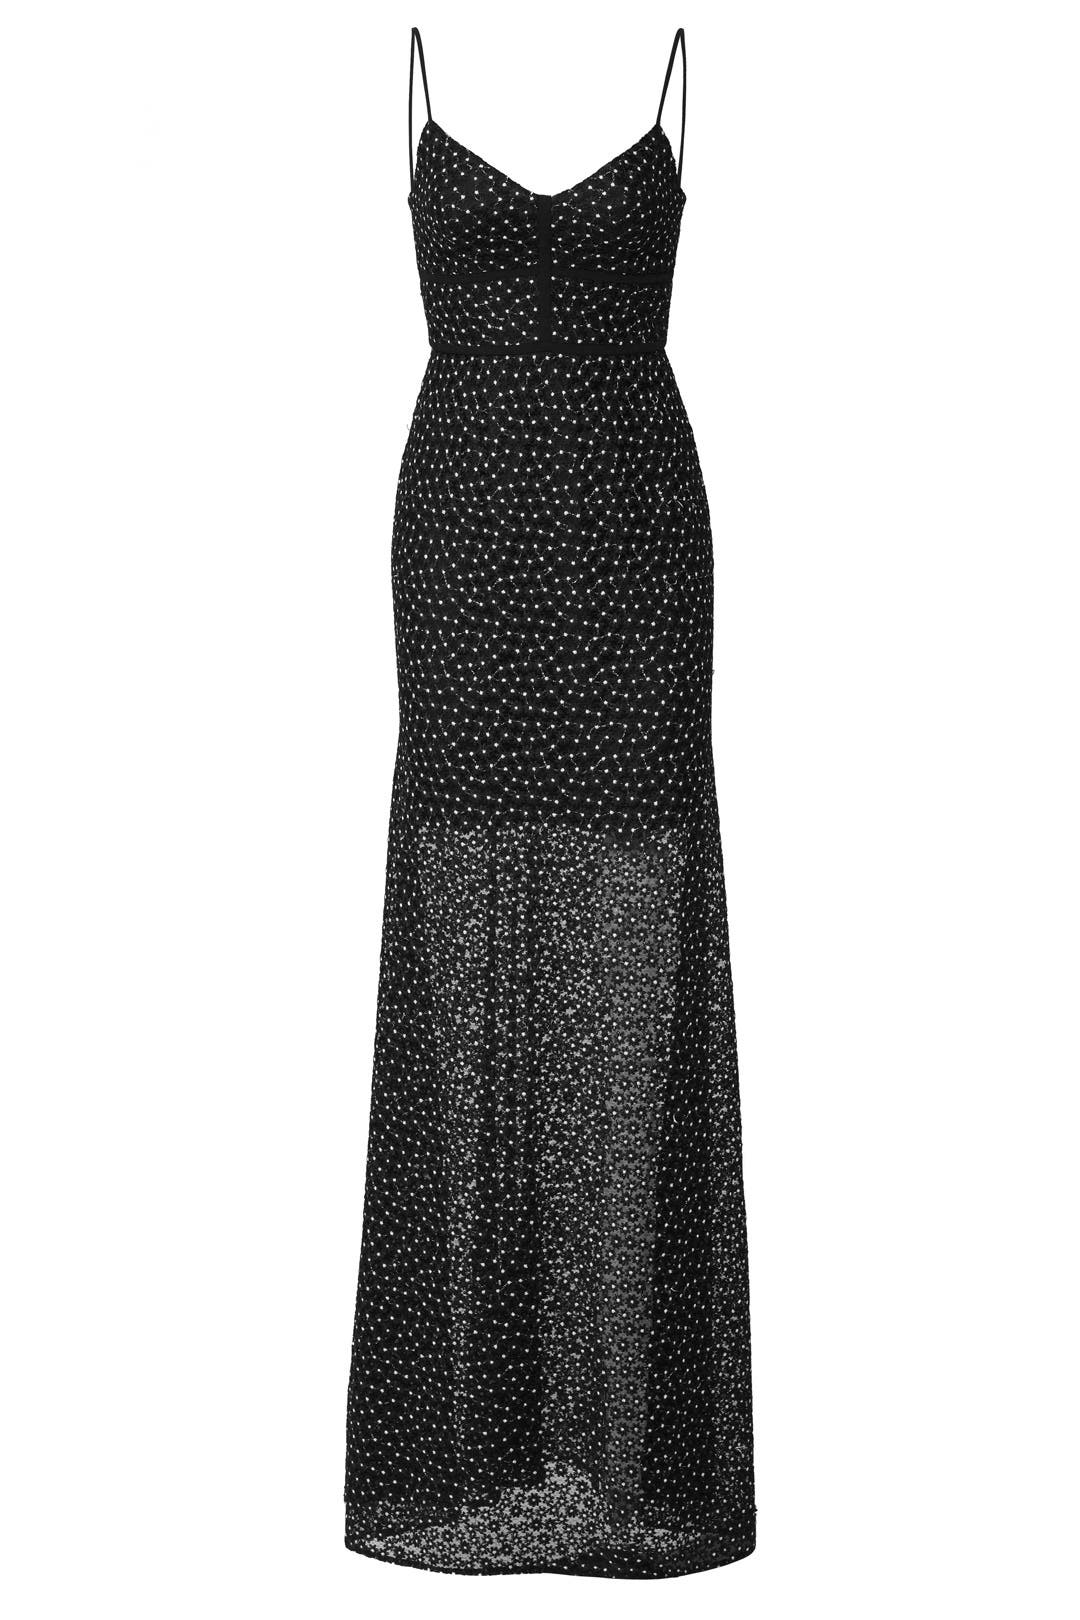 Floral Lace Slip Gown by Jill Jill Stuart for $50 - $70 | Rent the ...